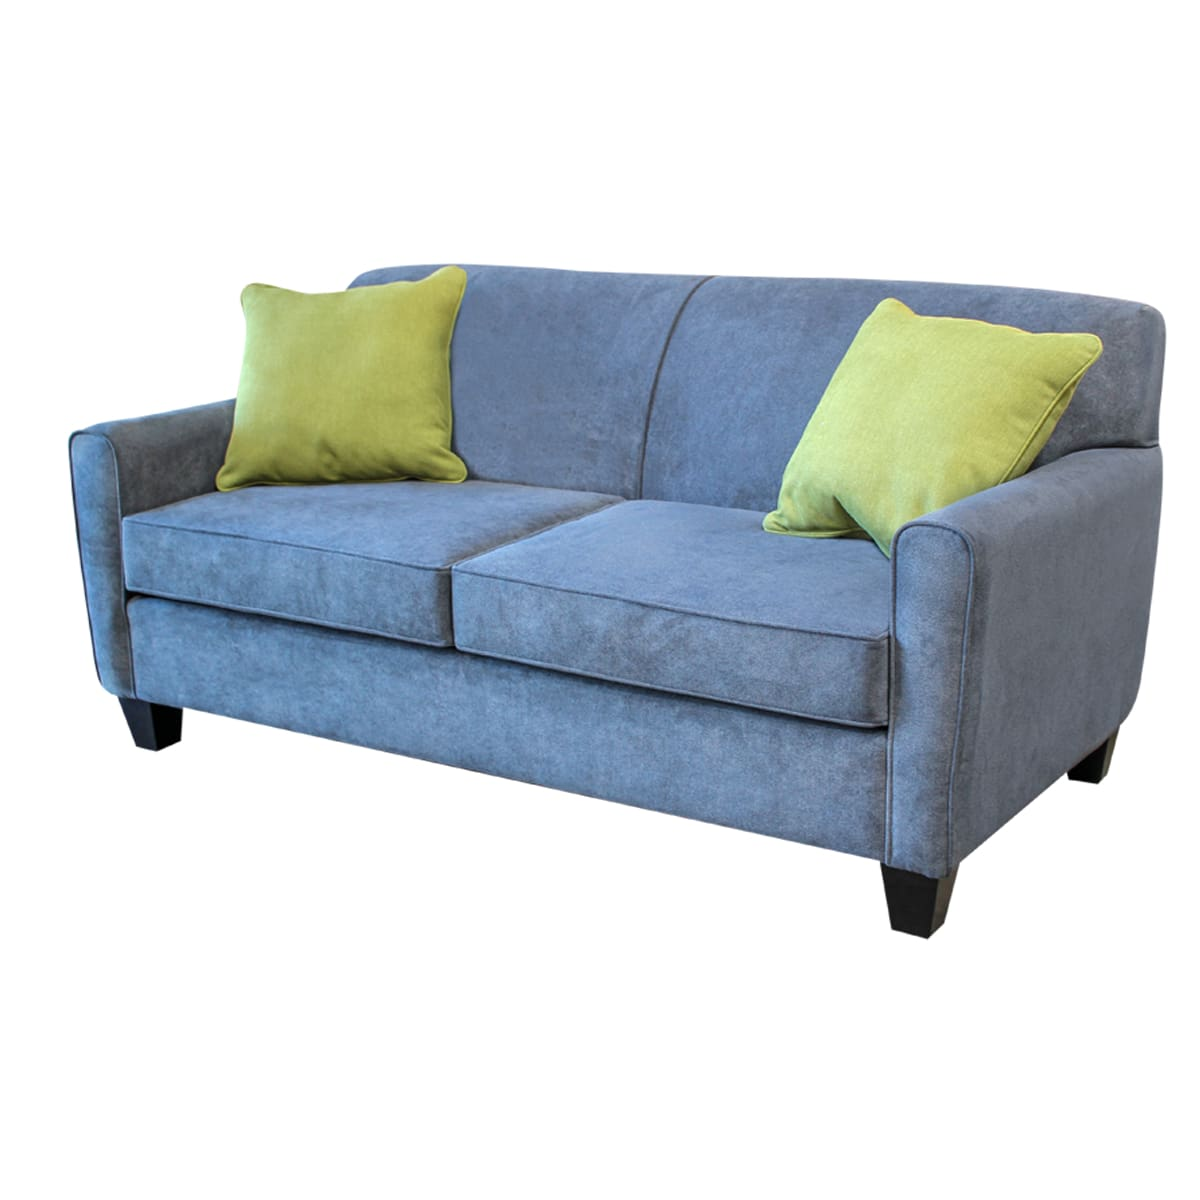 Boxer Sofabed - Sofabed